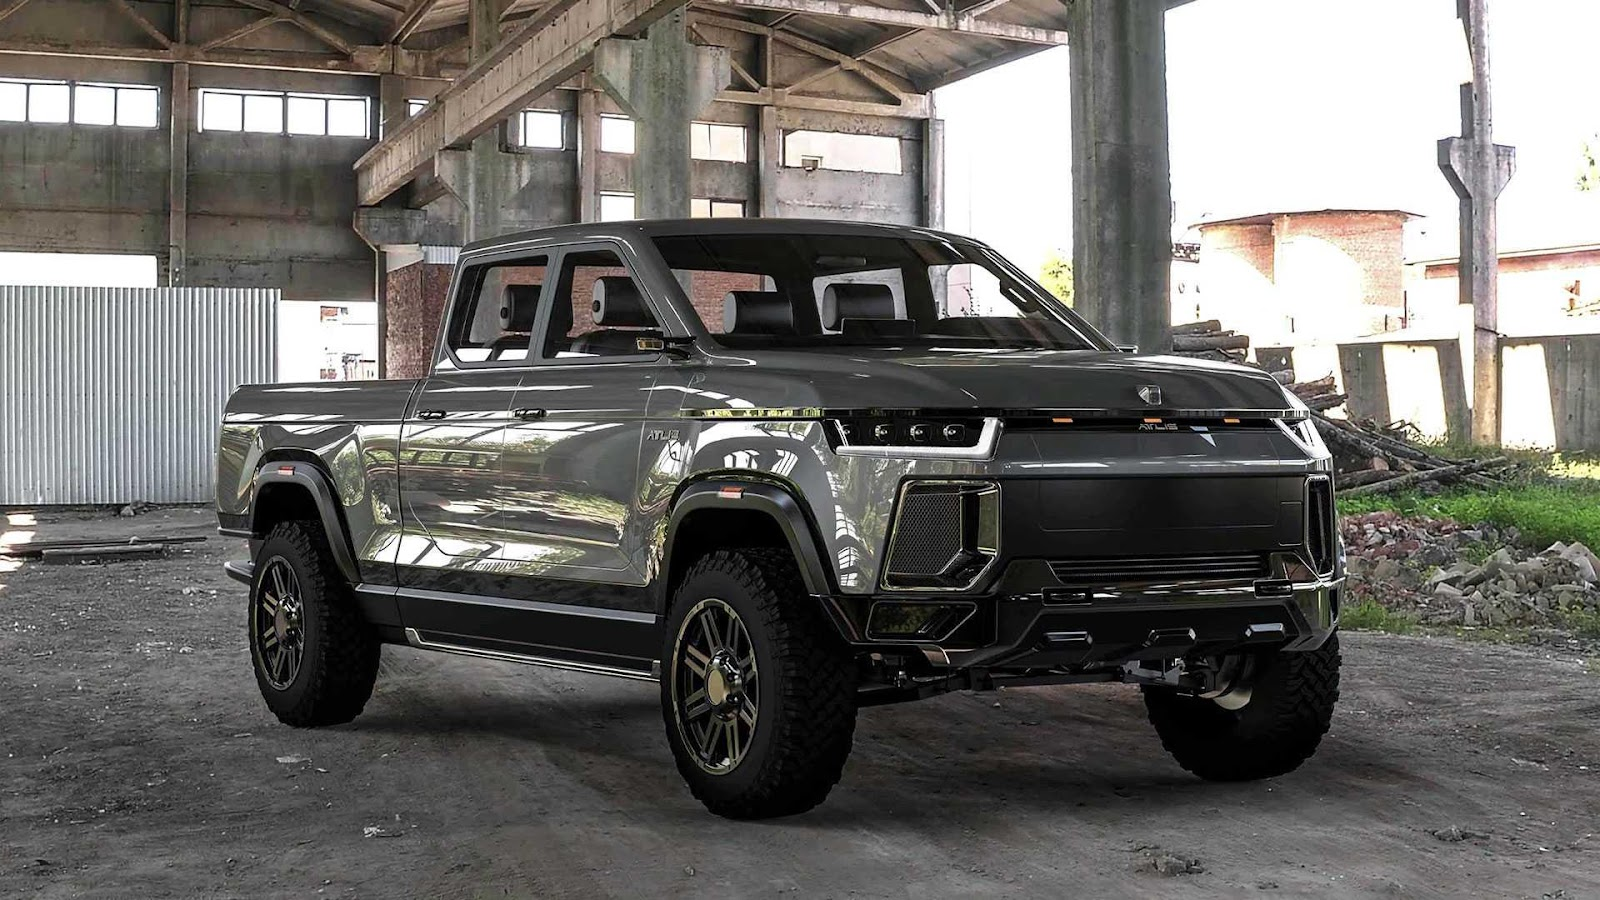 Rivian R1T Is A Real Electric Pickup Truck, But Atlis XT Is Not